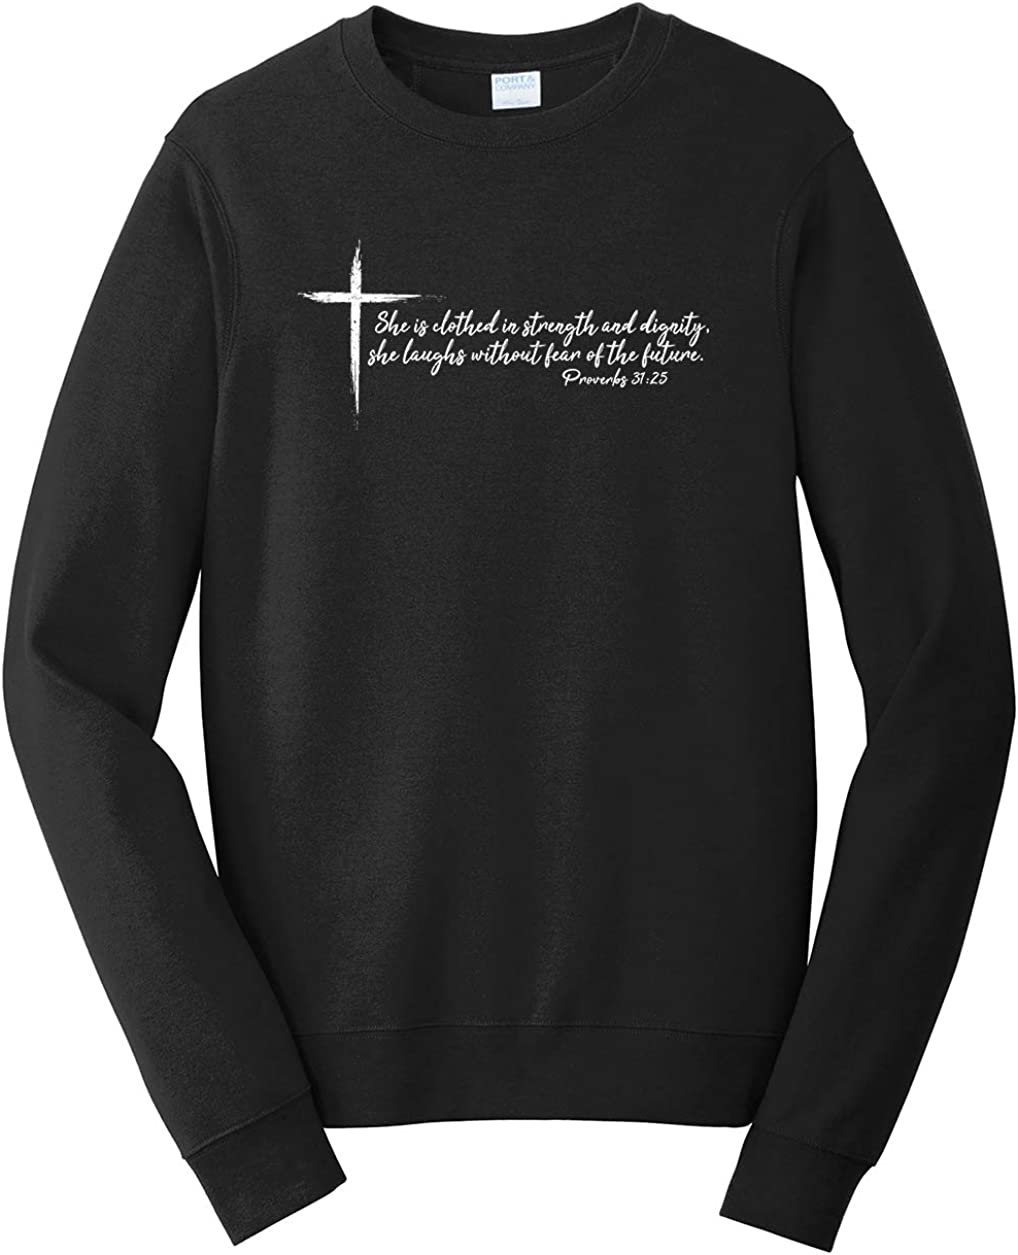 Tenacitee Mens She is Clothed in Strength Sweatshirt